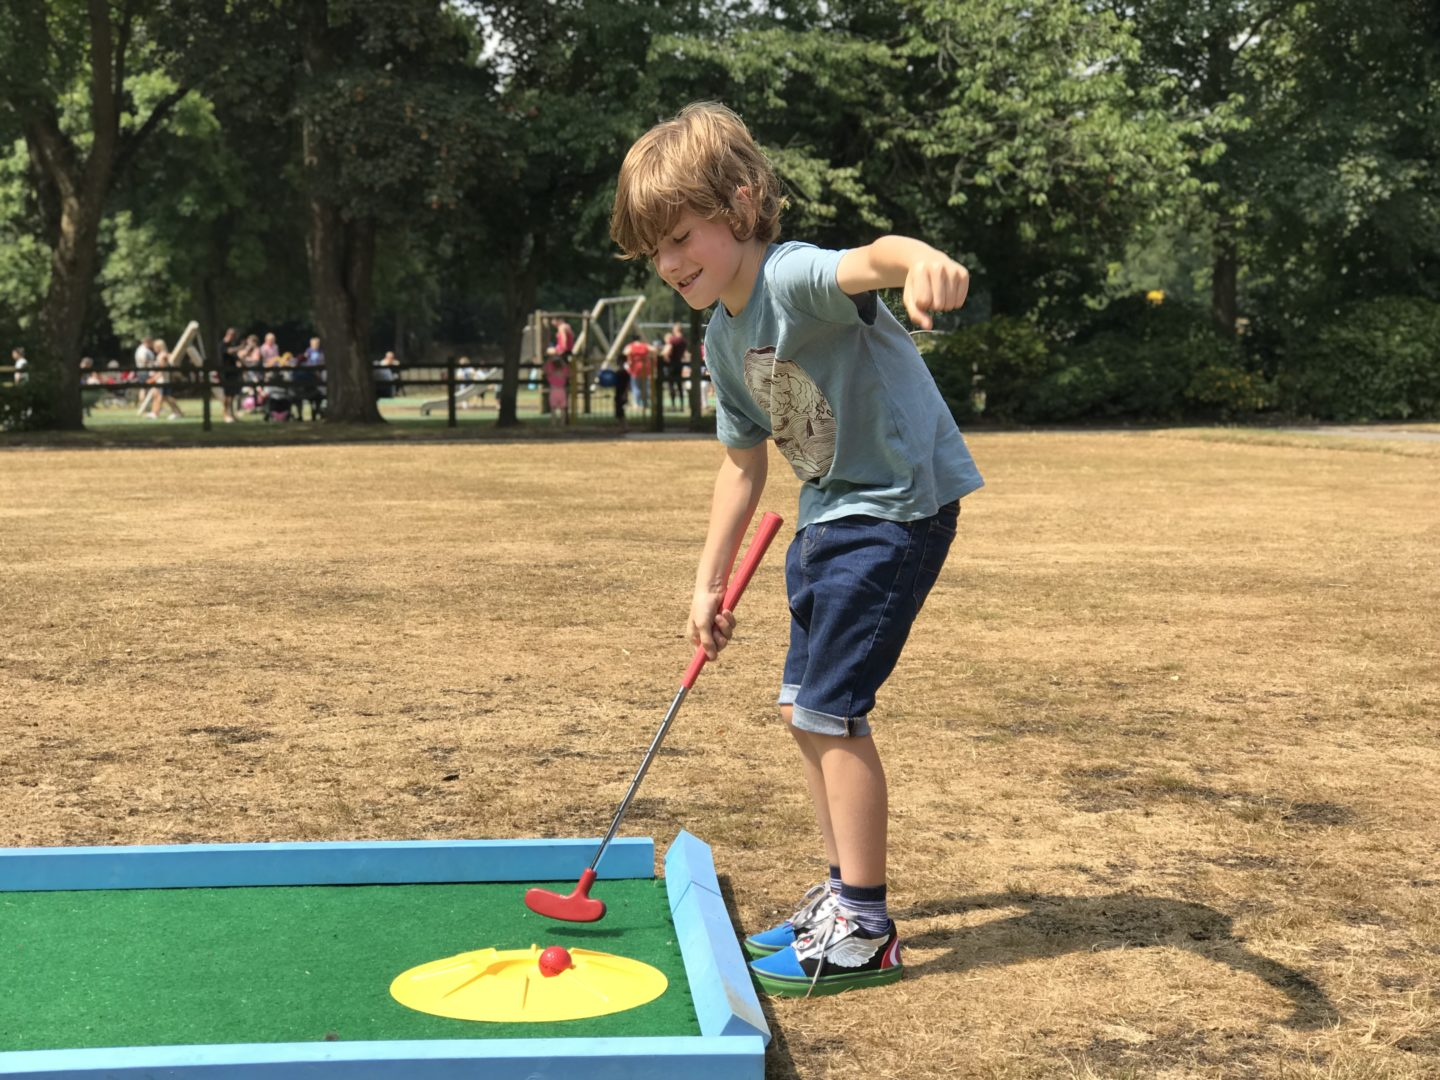 Days Out For the family with ParkLives...